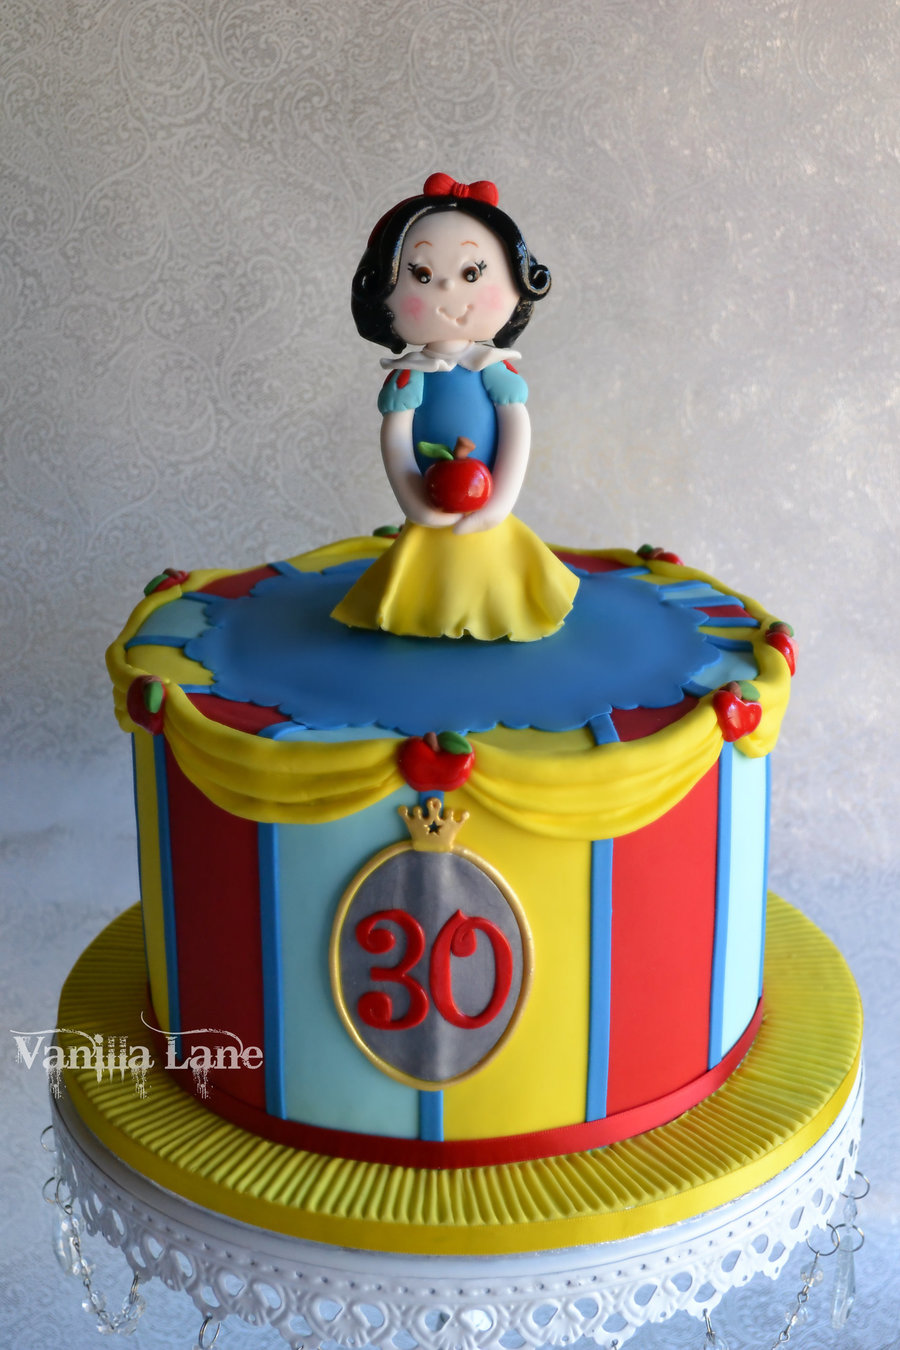 Snow White Cake For A Disney Themed 30th Birthday Cake Was